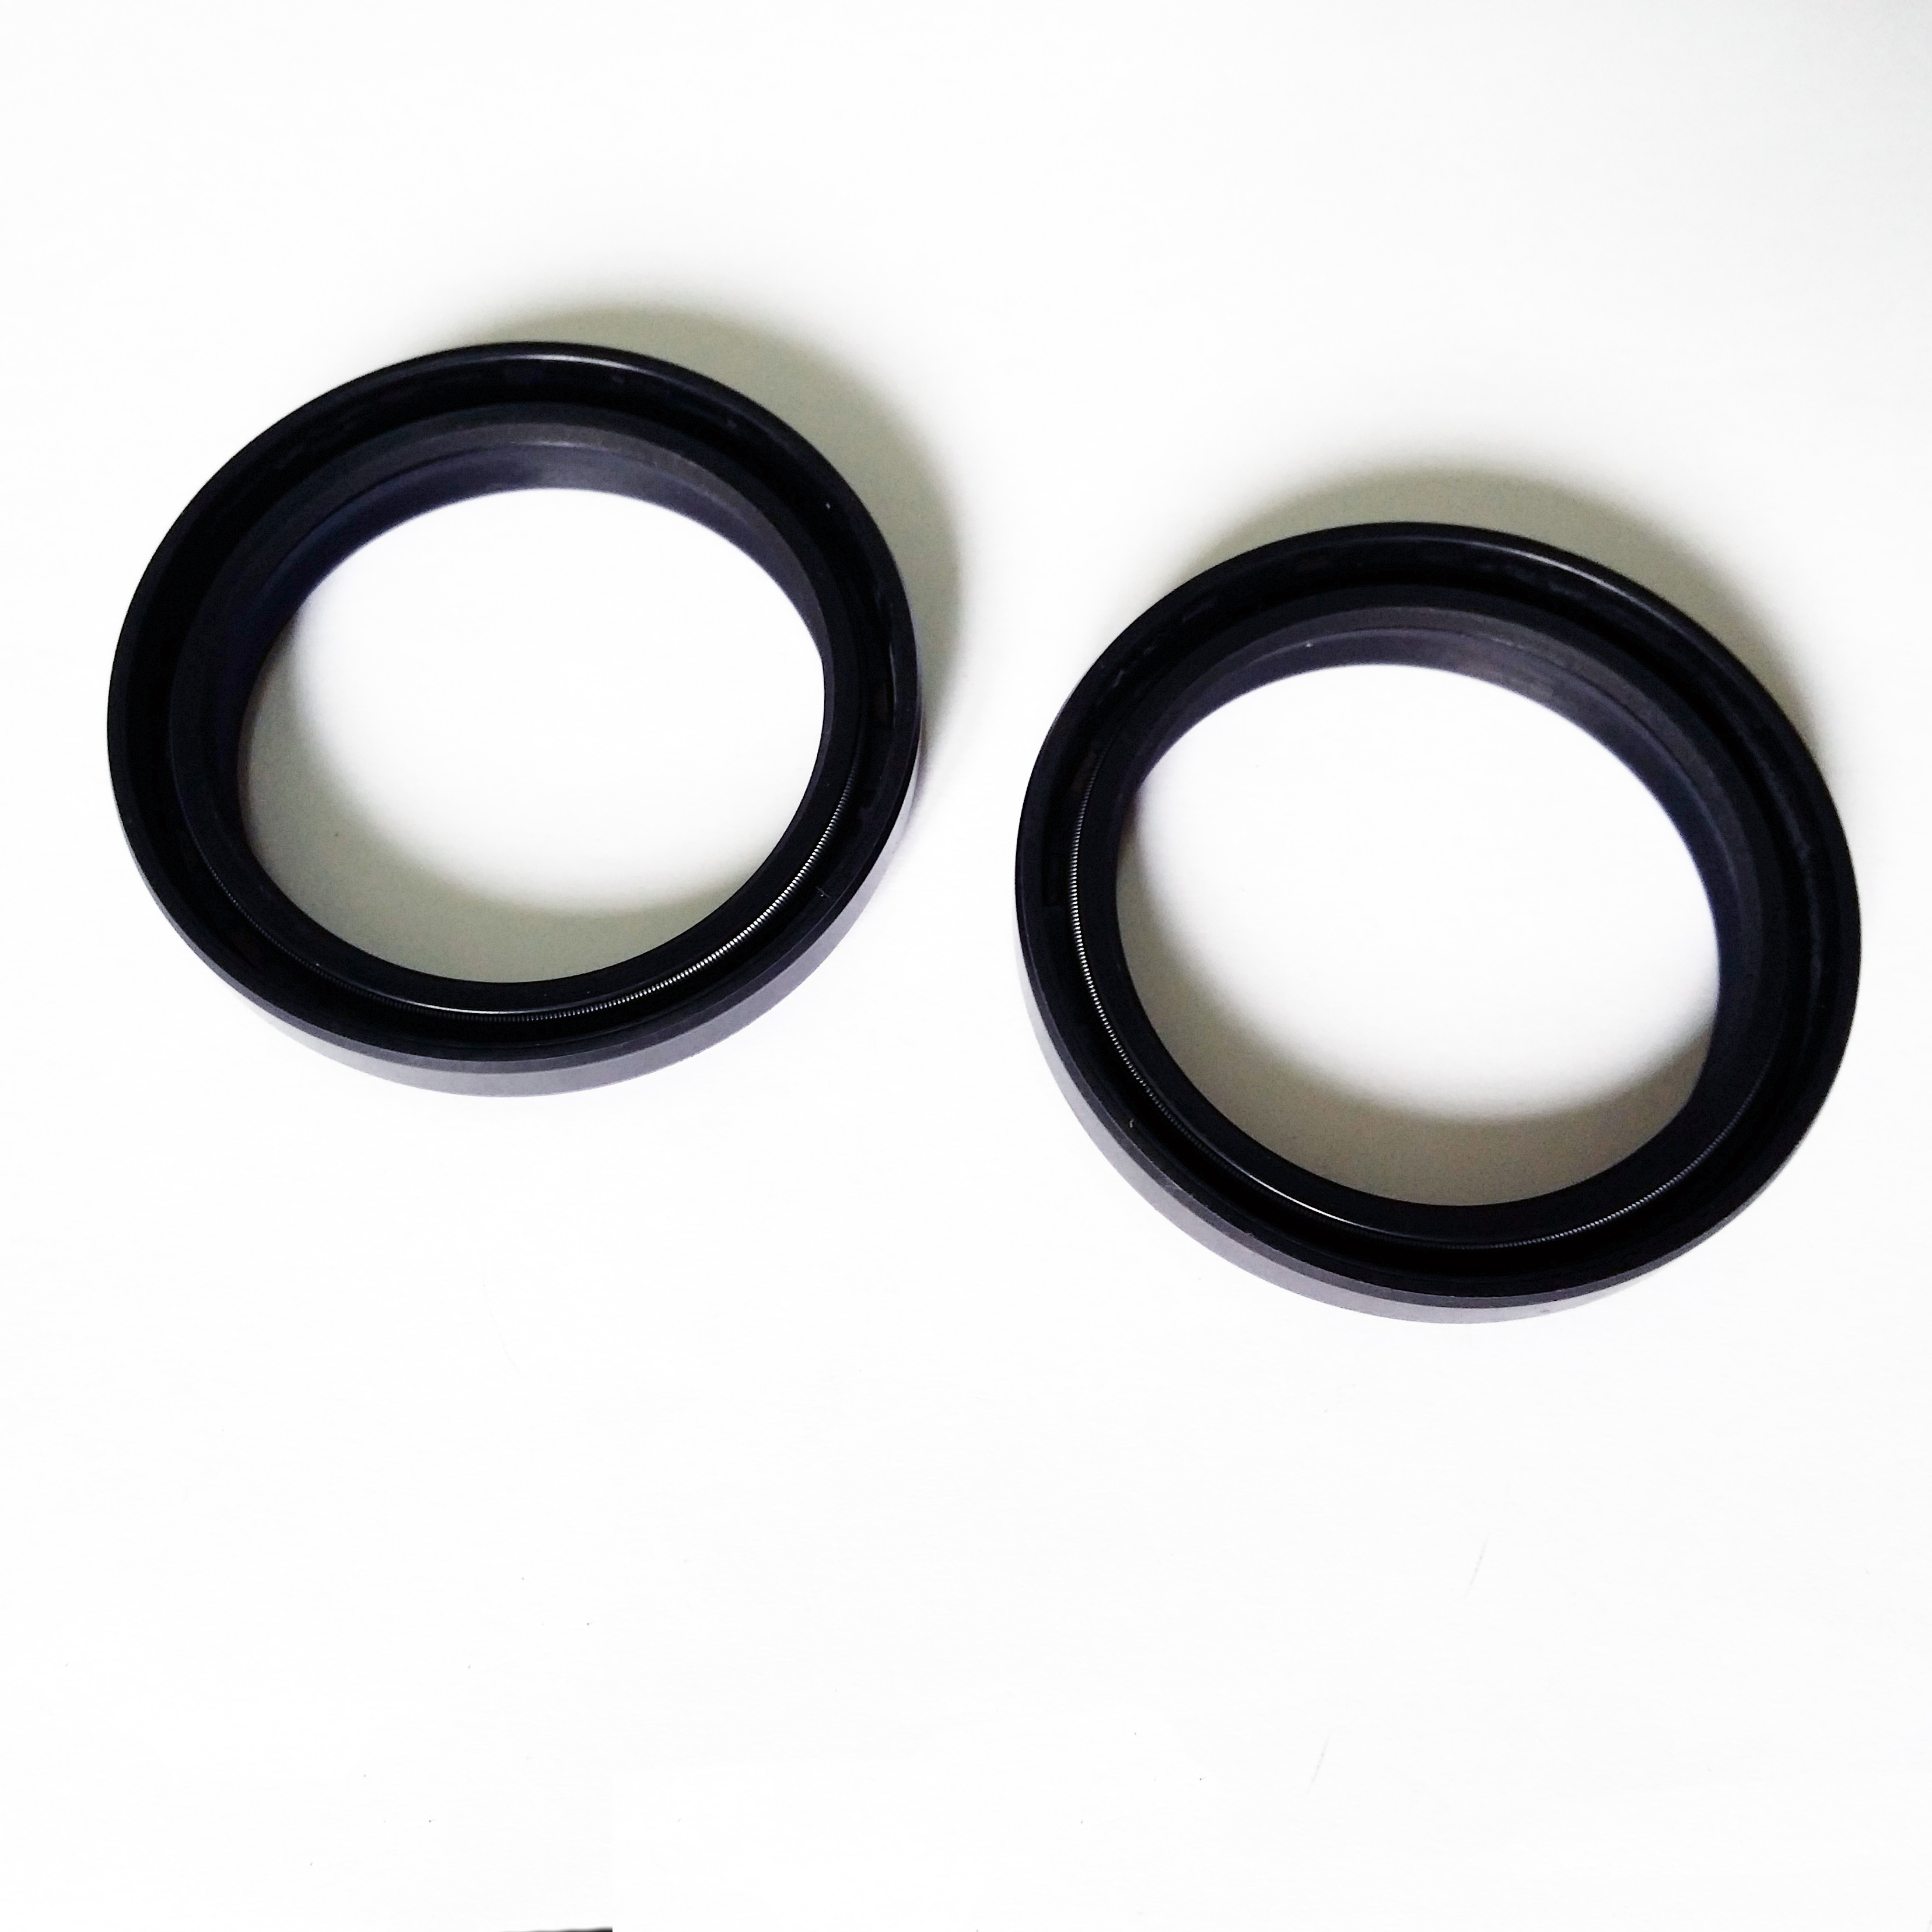 K-Tech Kawasaki ZX6-RR 2005-2006 NOK Front Fork Oil Seals 41x54x11mm